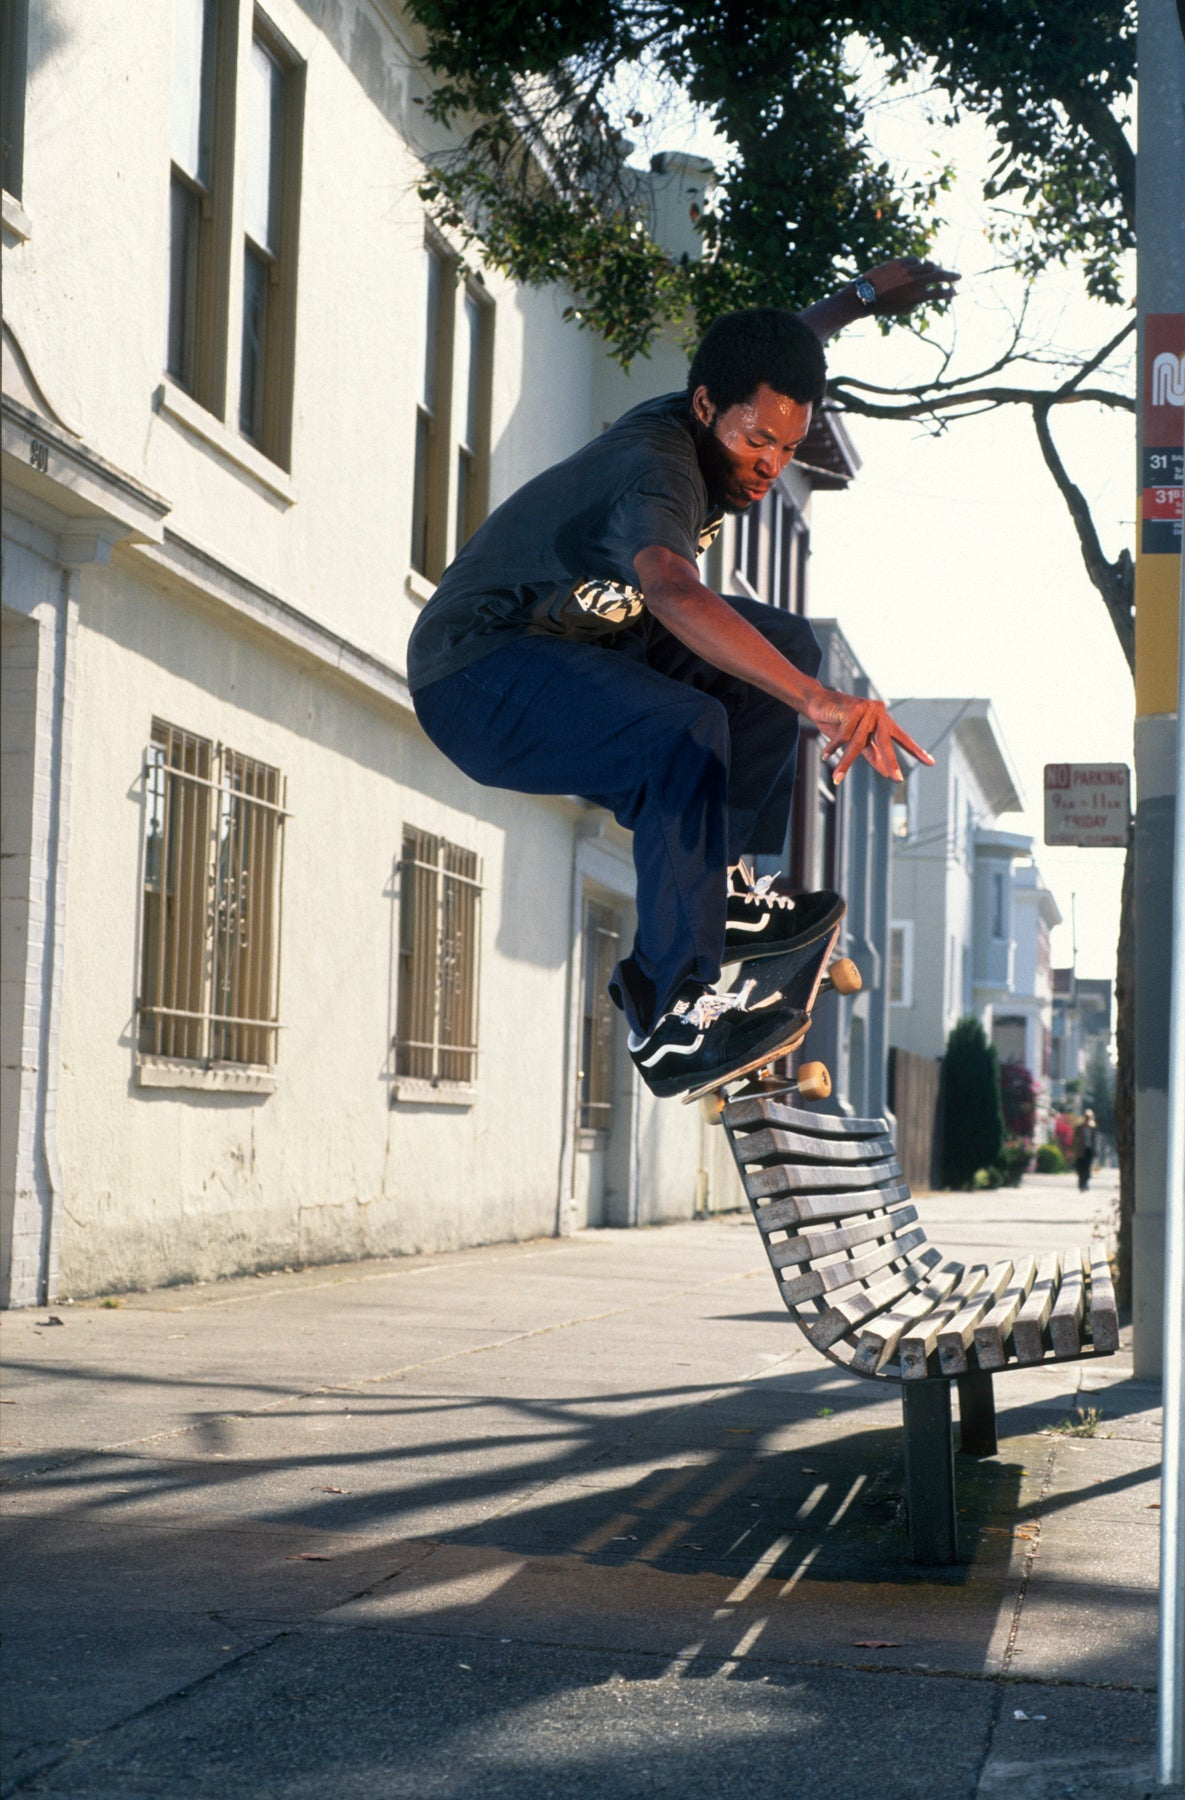 Image of Ray Barbee, San Francisco 1997, Transworld pro spotlight by Tobin Yelland